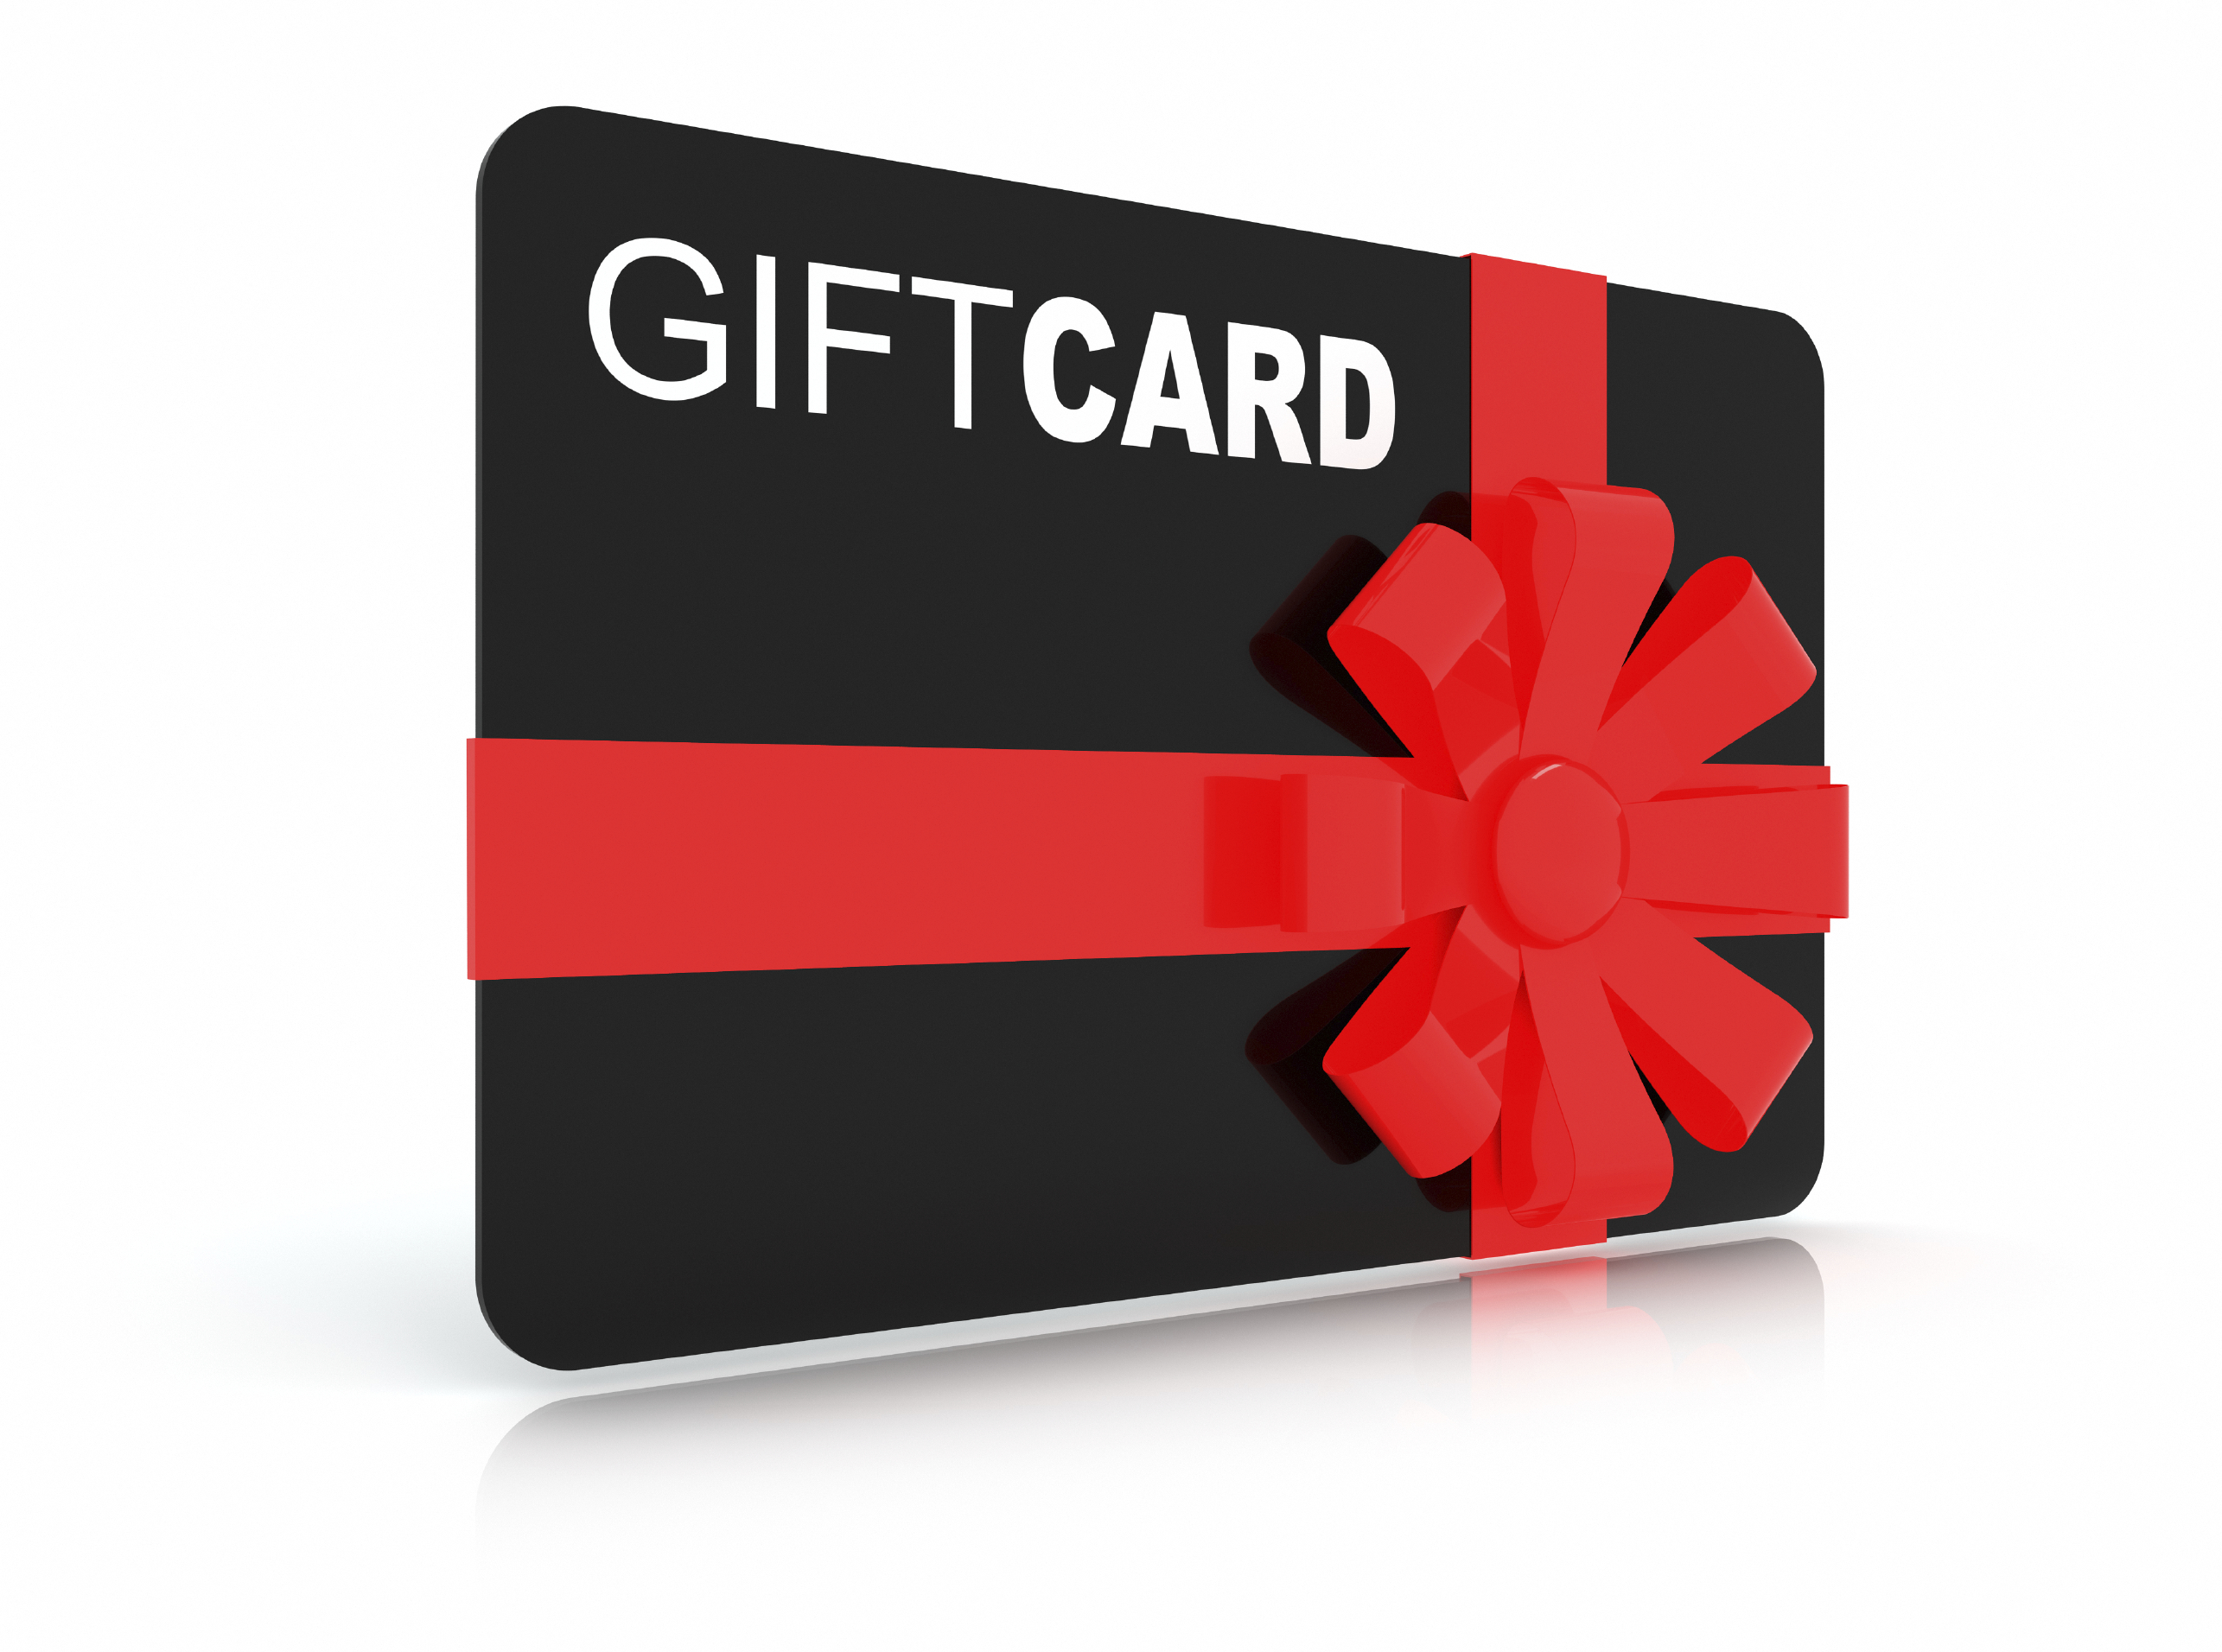 2017 Gift Card - MTAC - Midwest Threat Assessment Centers